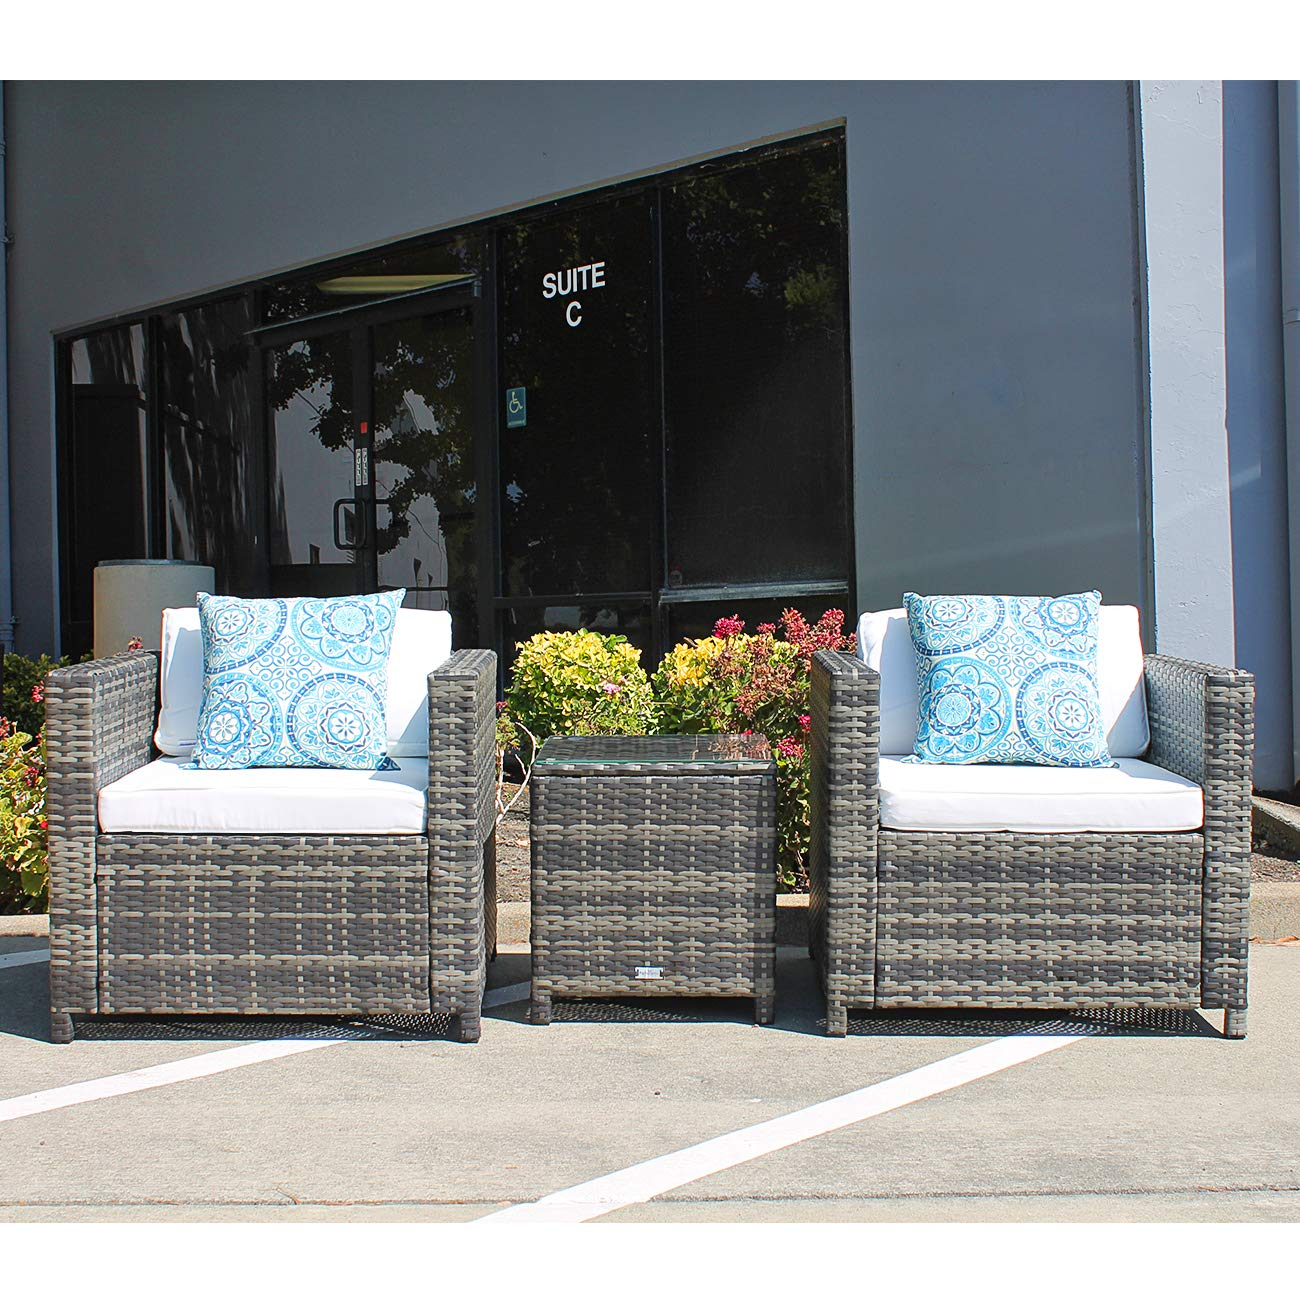 Patiorama Patio Porch Furniture Sets 3 Pieces PE Rattan Grey Wicker Chairs White Cushion with Table Outdoor Garden Furniture Sets by Patiorama